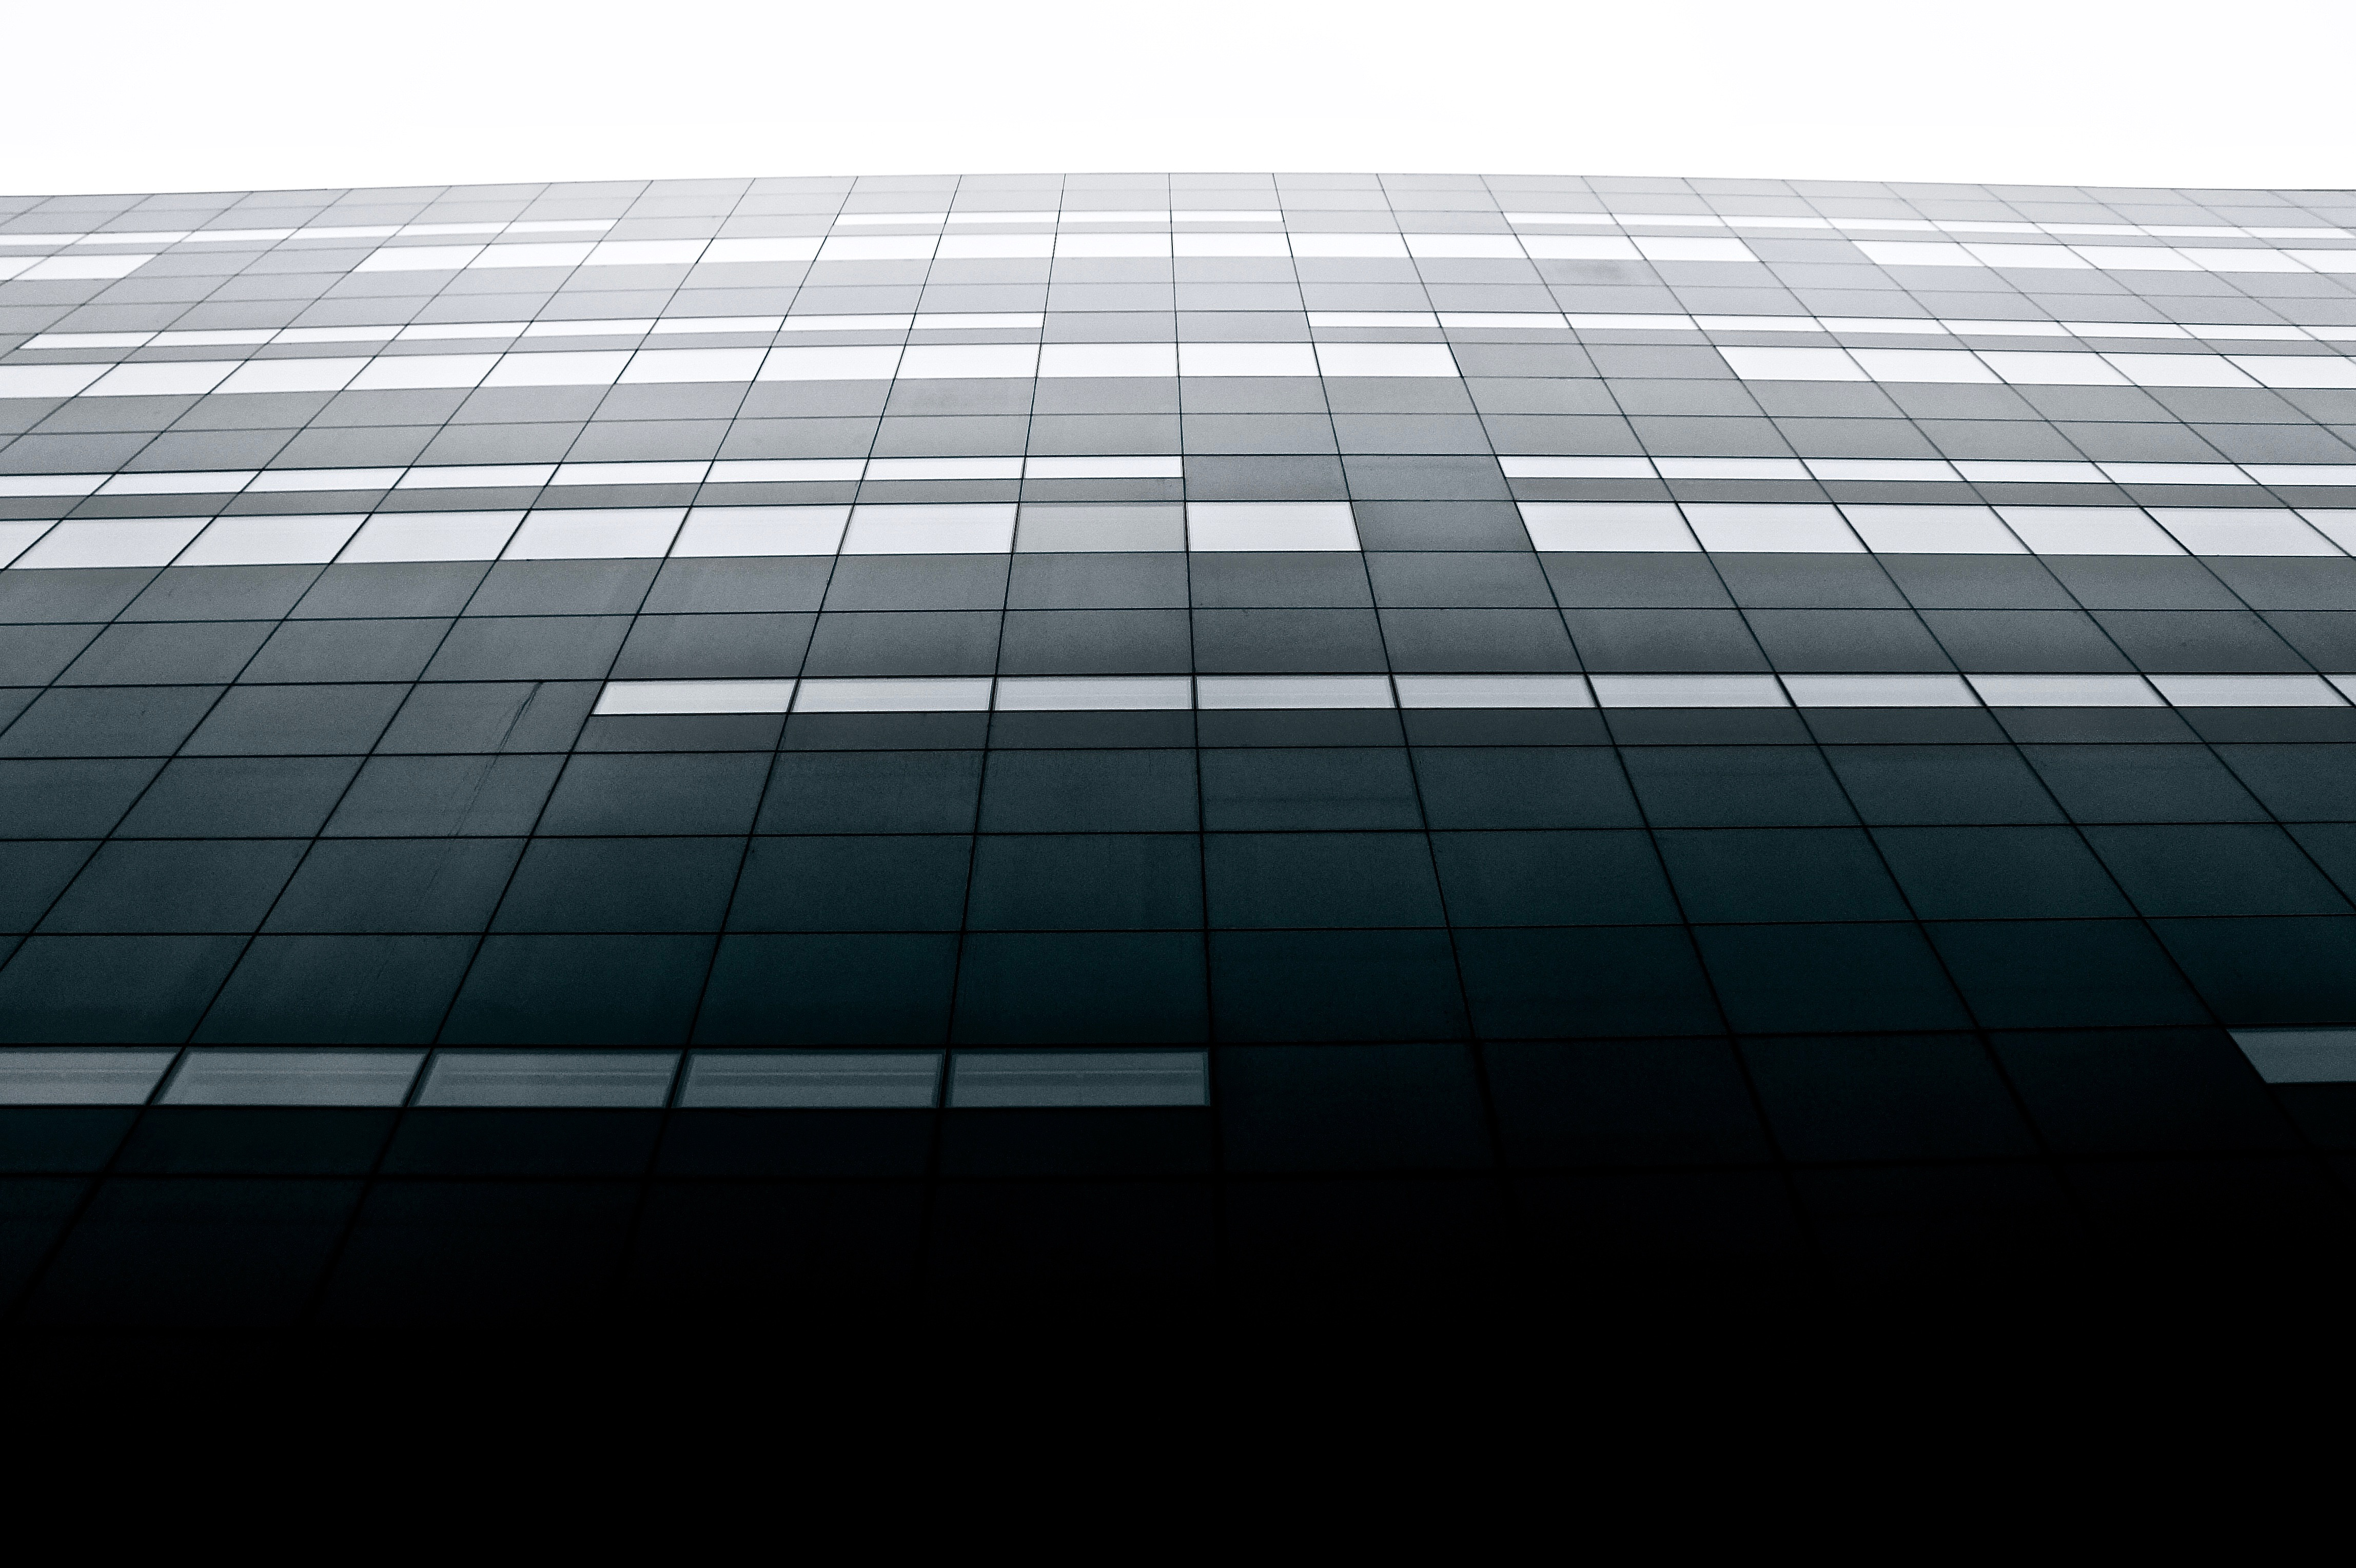 Free stock photo of black-and-white, building, architecture, symmetrical